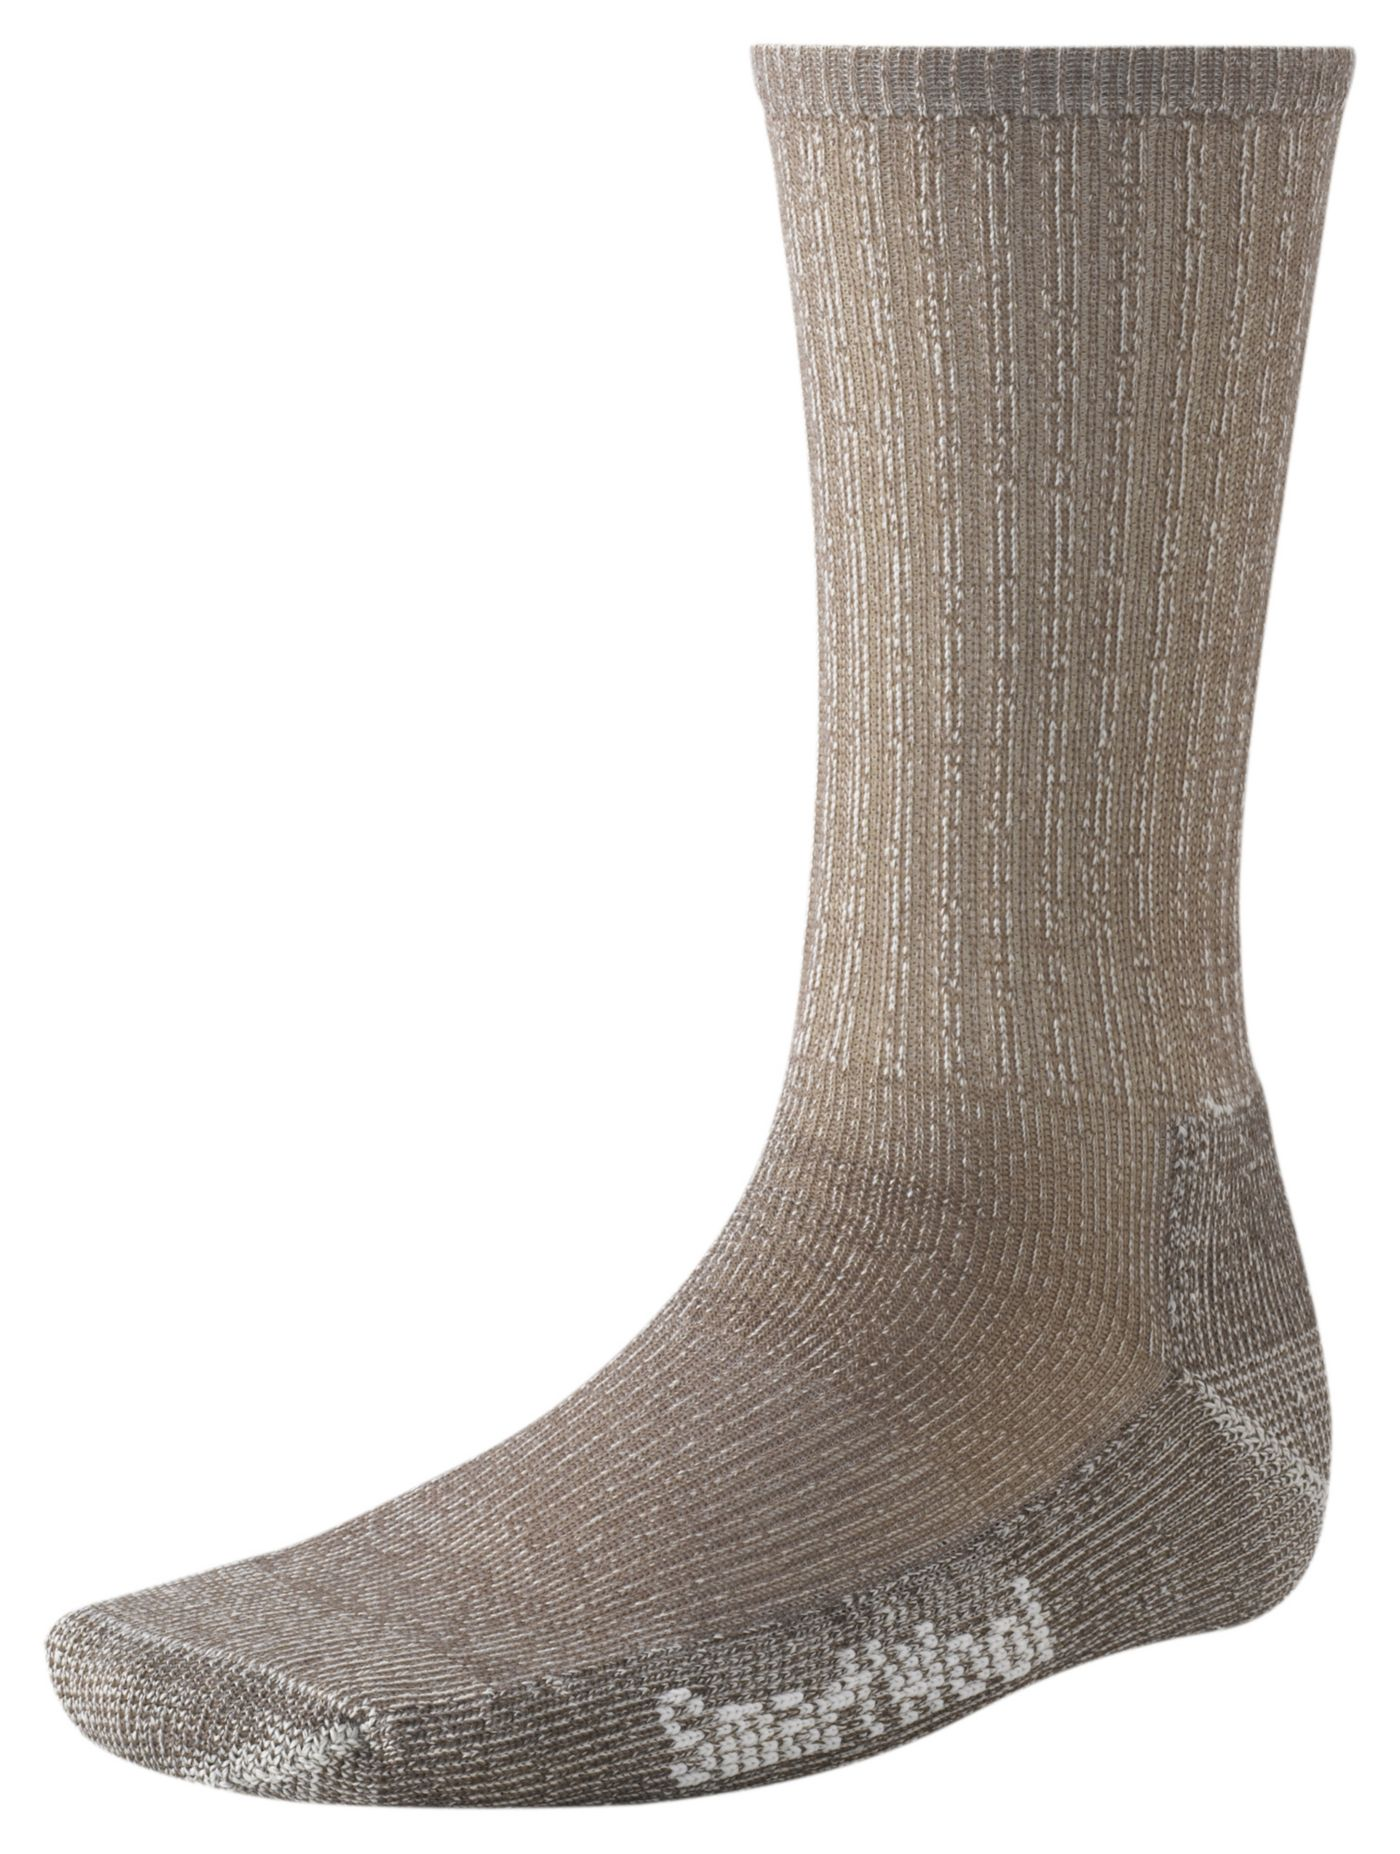 SmartWool Lightweight Hiking Socks